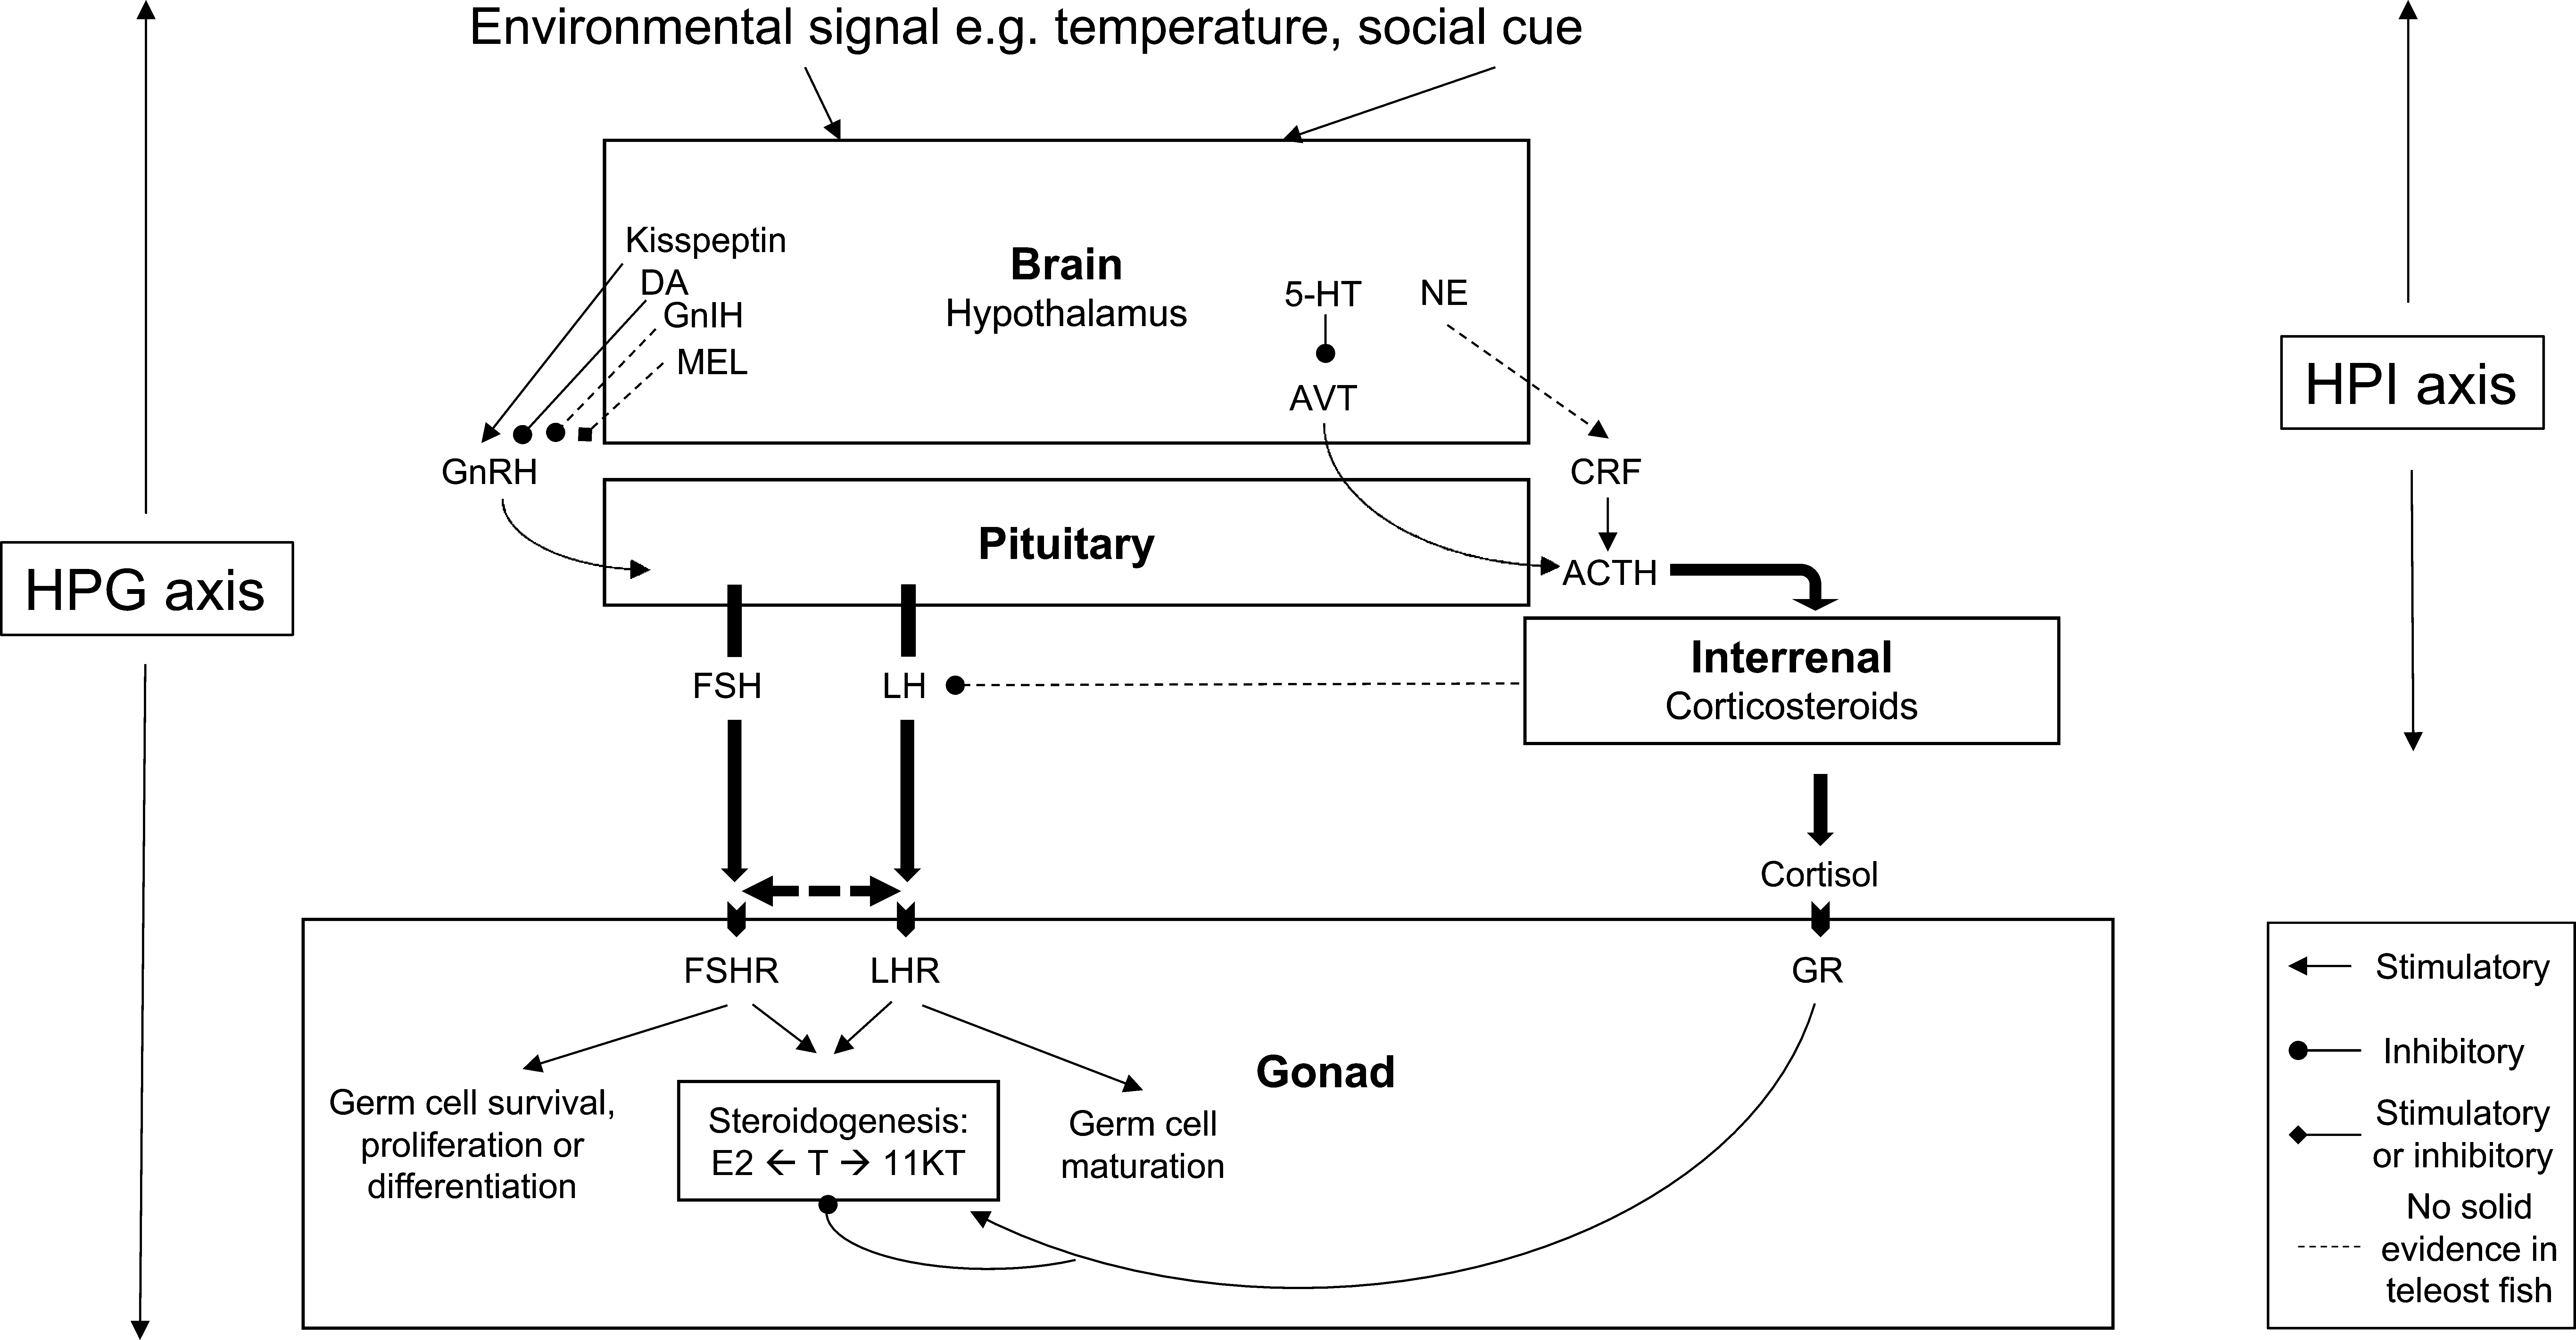 stress and sex does cortisol mediate sex change in fish? in